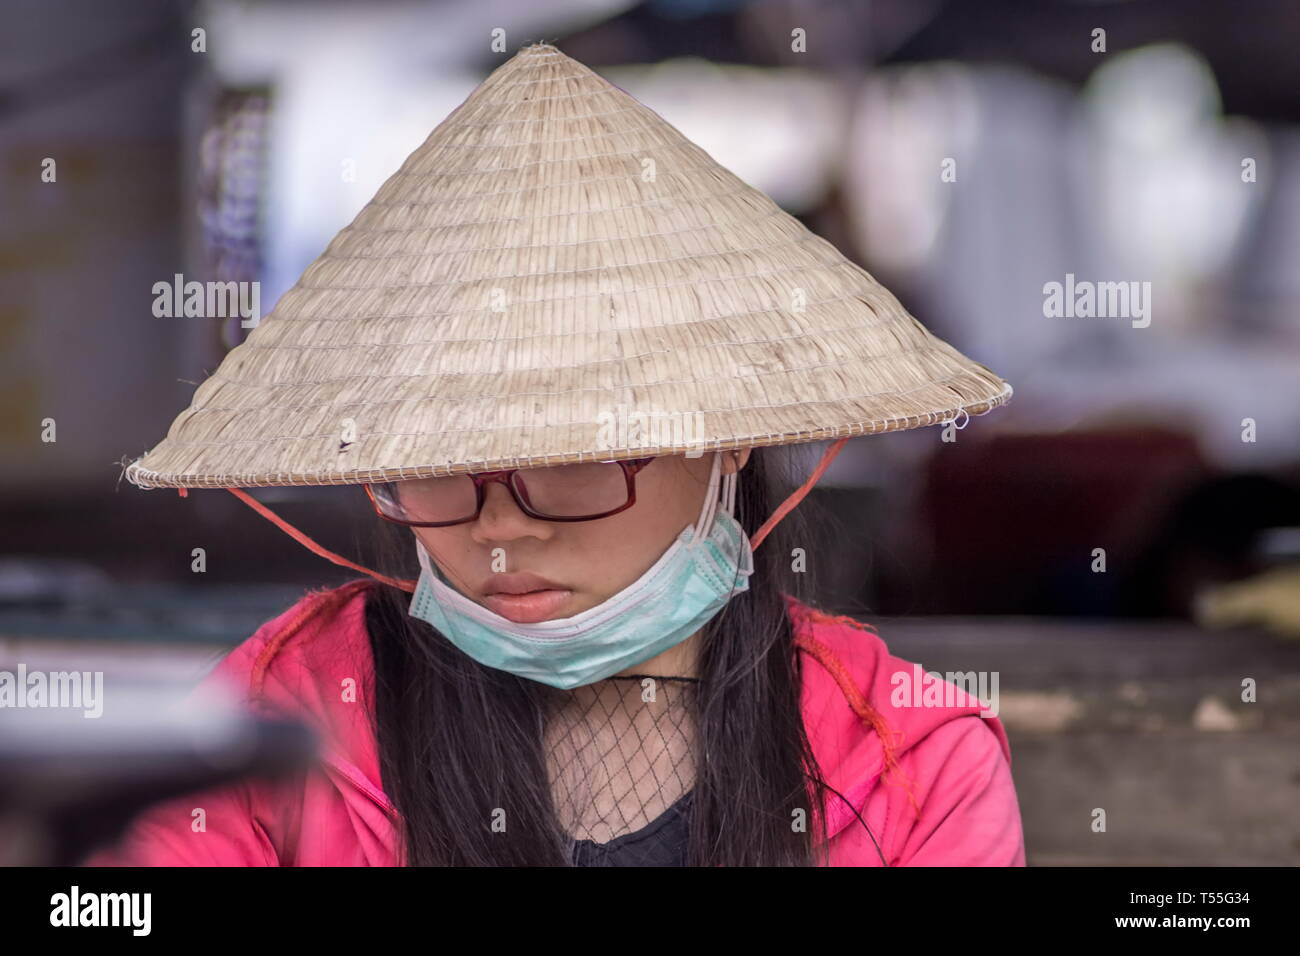 Portrait o a young Vietnamese woman wearing traditional conical hat Stock Photo